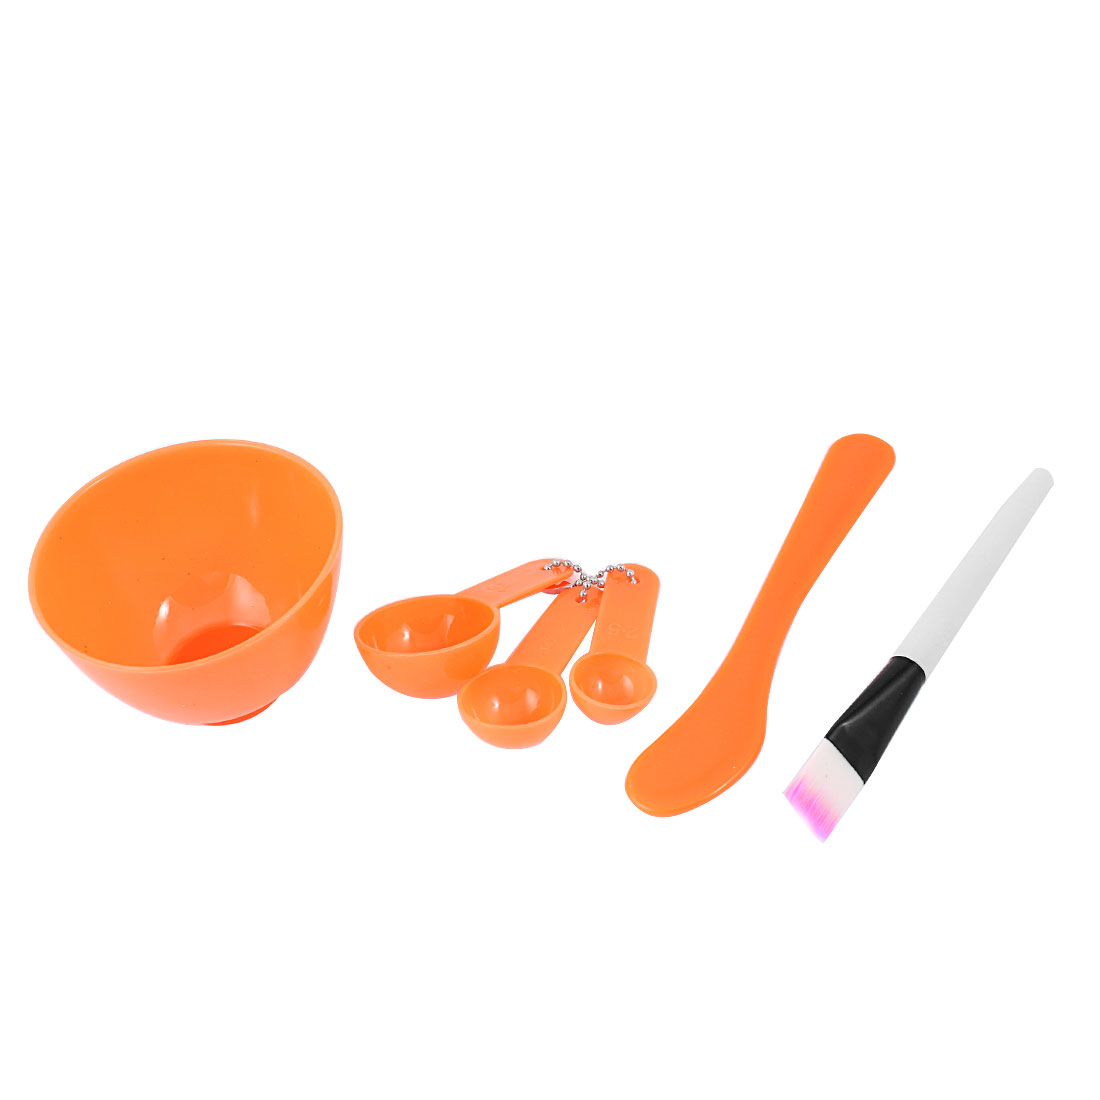 Orange 4 in 1 Cosmetic Tool Mask Mixing Stick Brush Spoon Bowl Kit